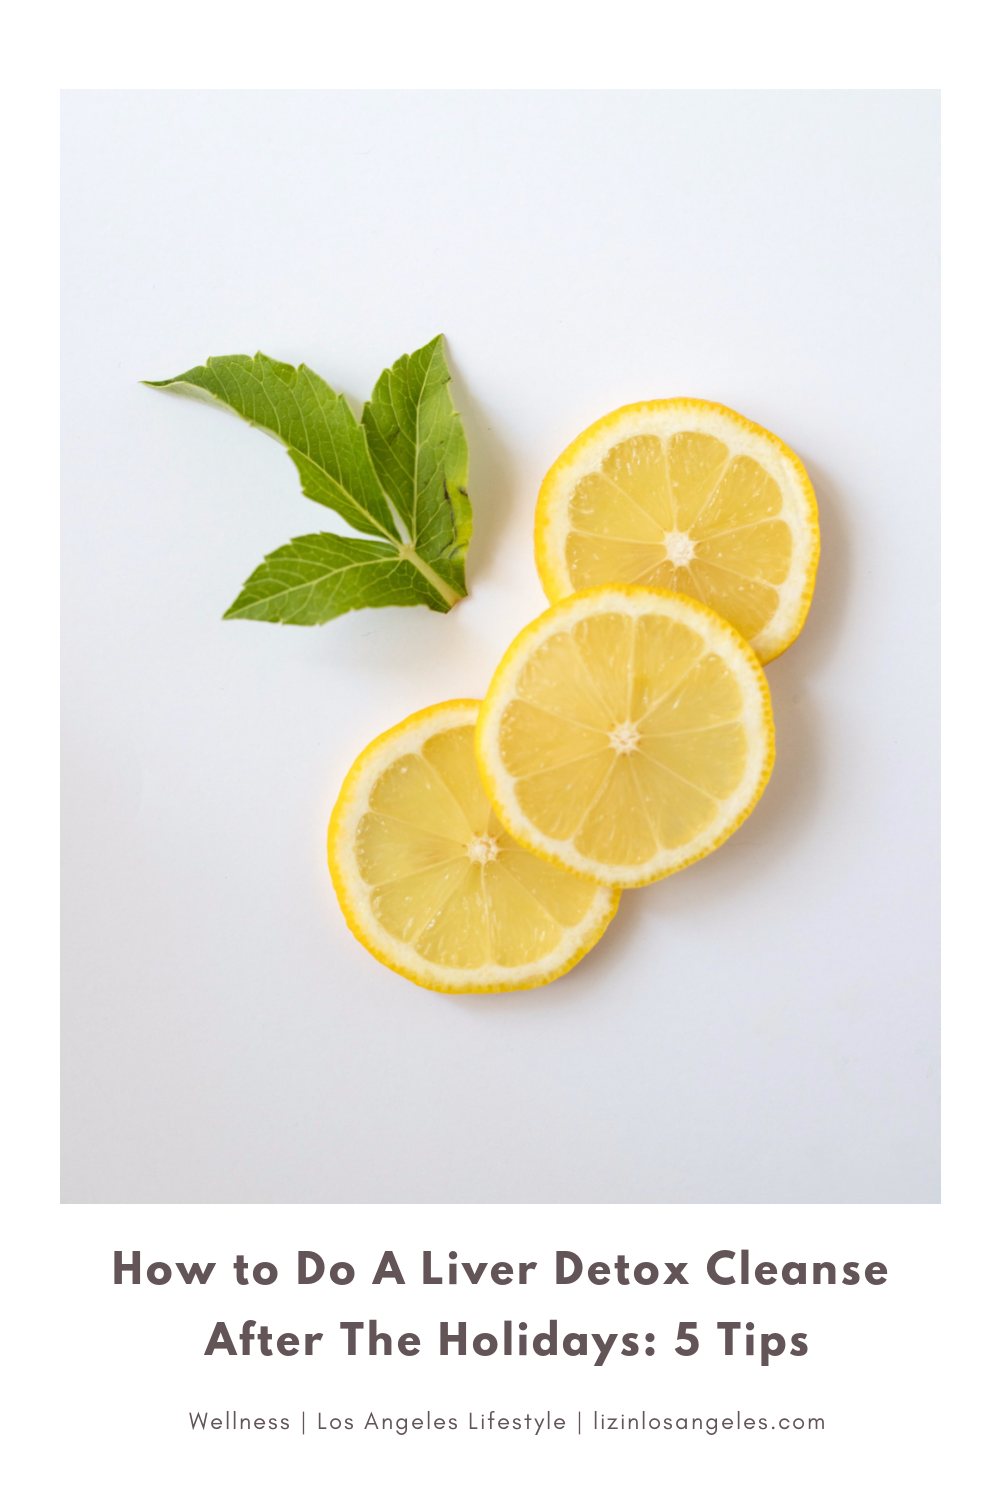 How to Do A Liver Detox Cleanse After The Holidays: 5 Tips by Liz in Los Angles, Los Angeles Lifestyle Blogger, an image of lemons to prep a liver detox